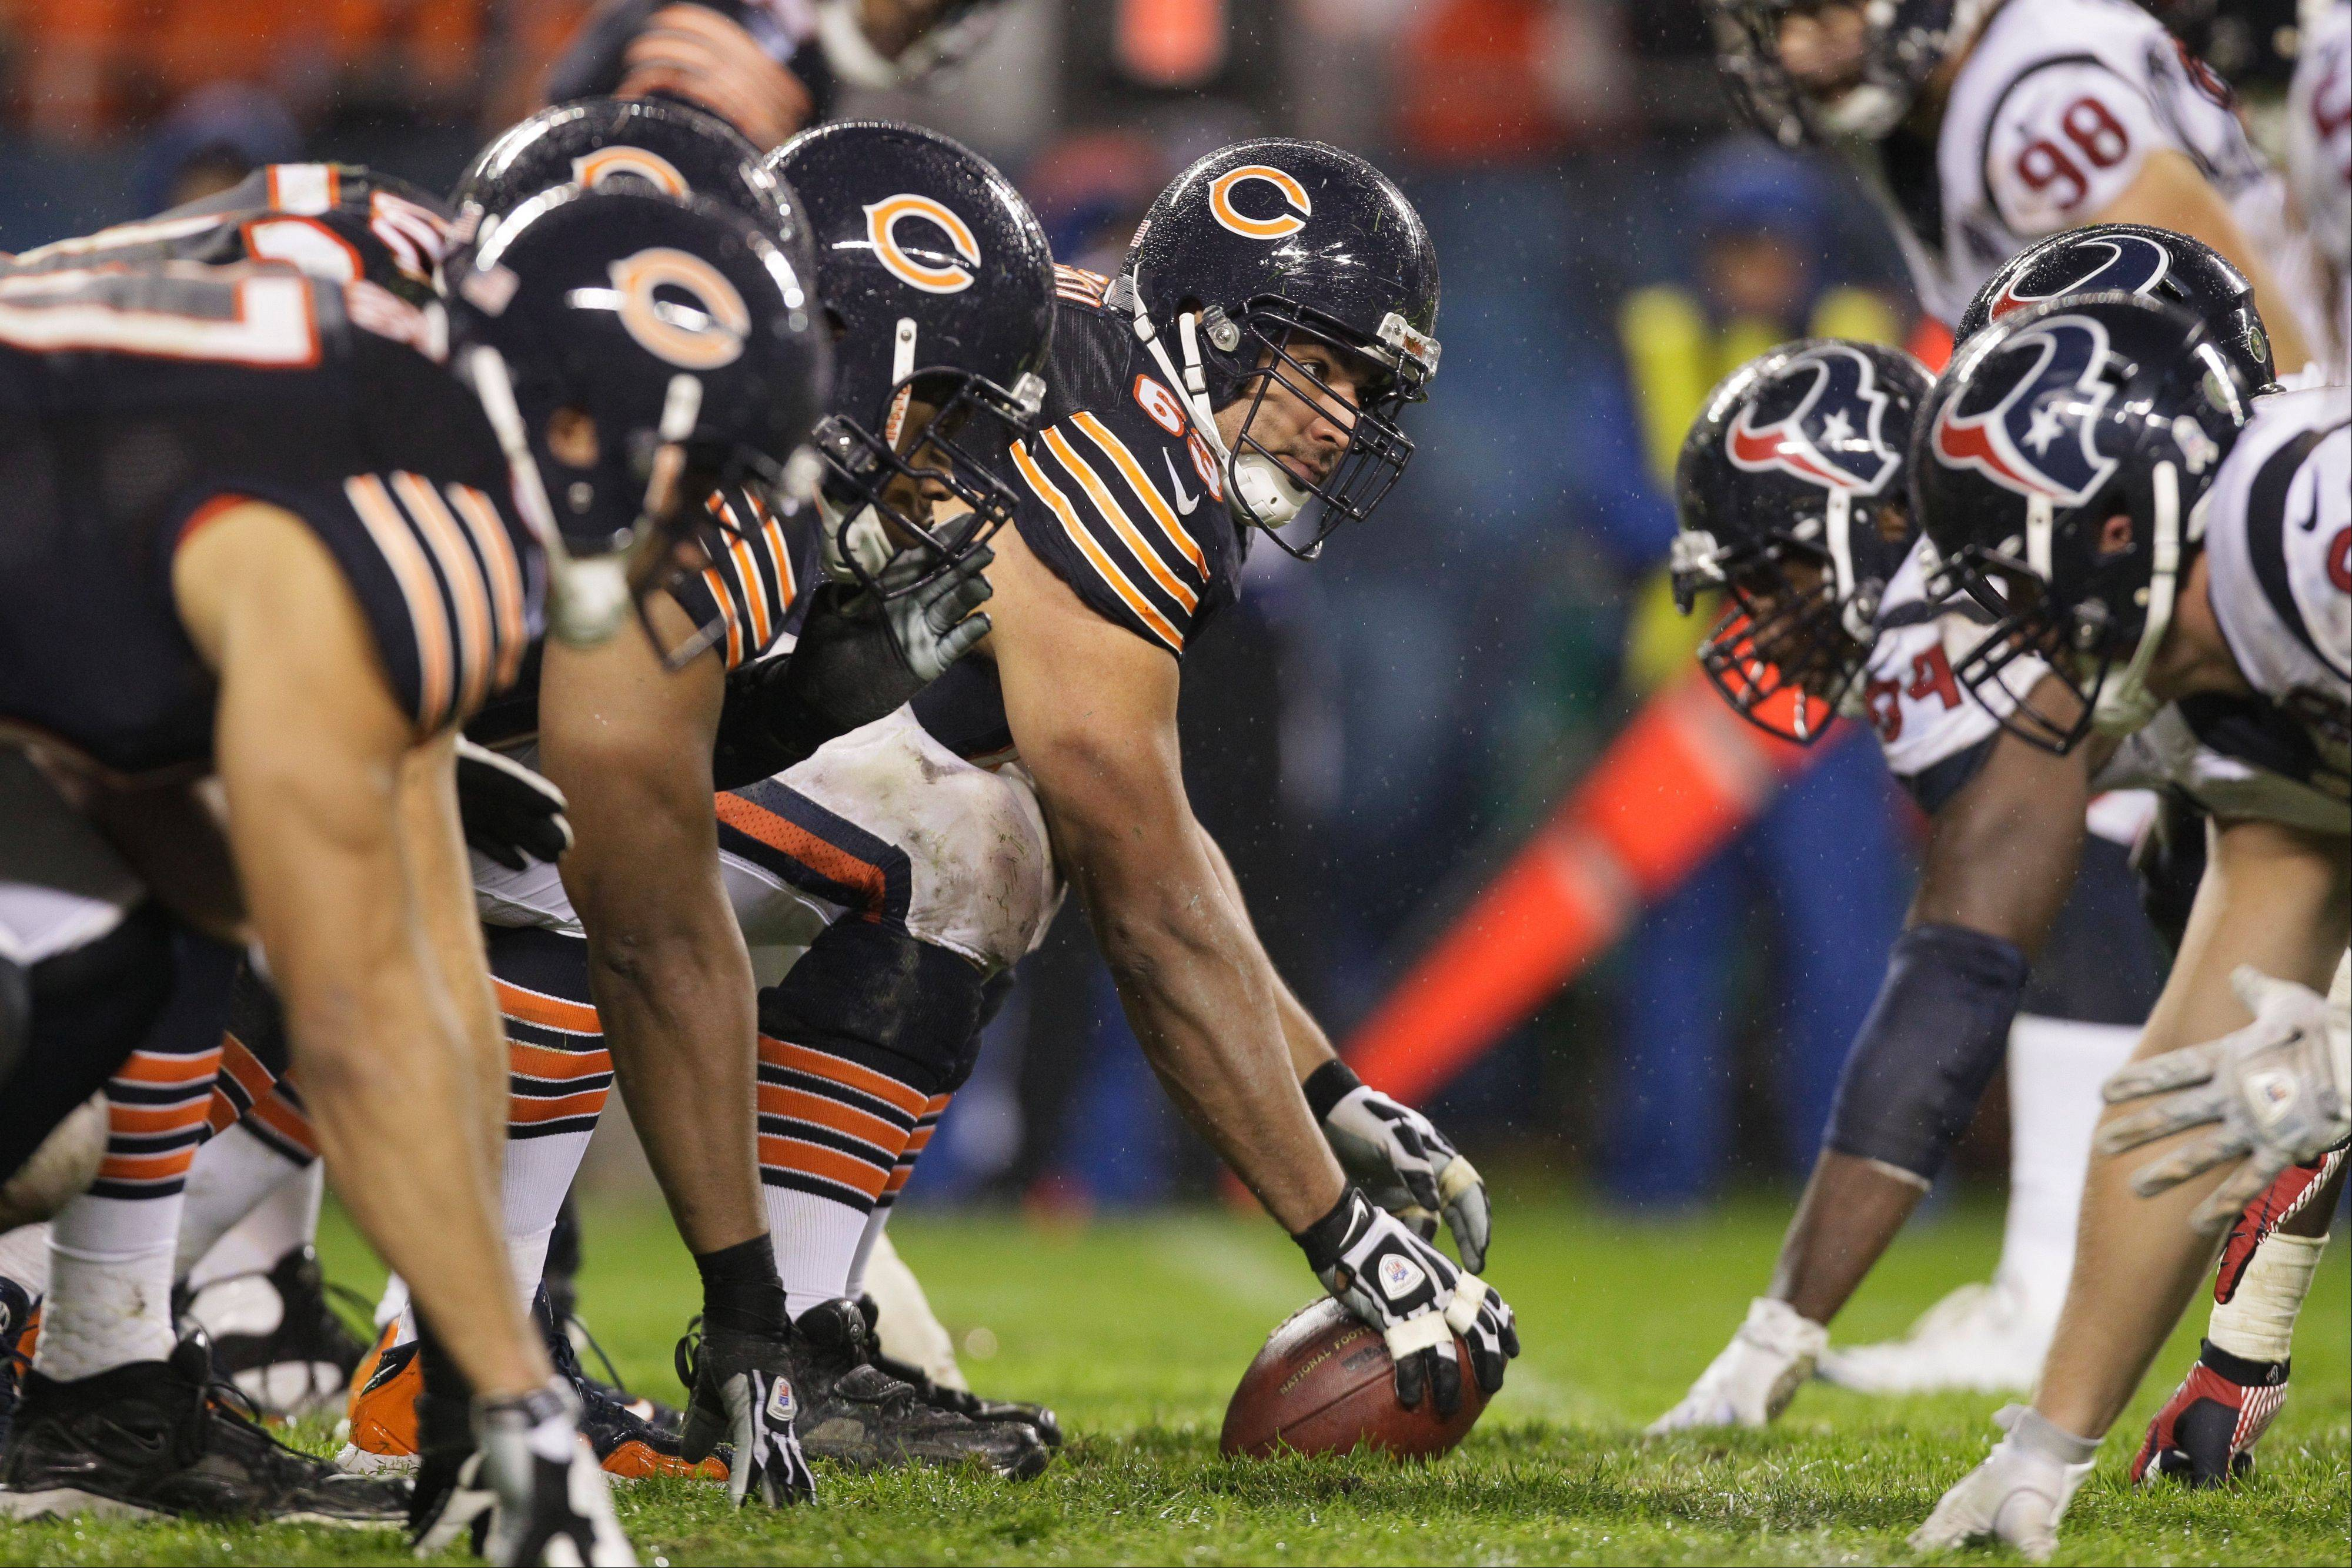 Bears center Roberto Garza could be the only offensive lineman who is safe from a possible position change. Offensive coordinator Mike Tice said the team is considering all options to get improved play from the line.